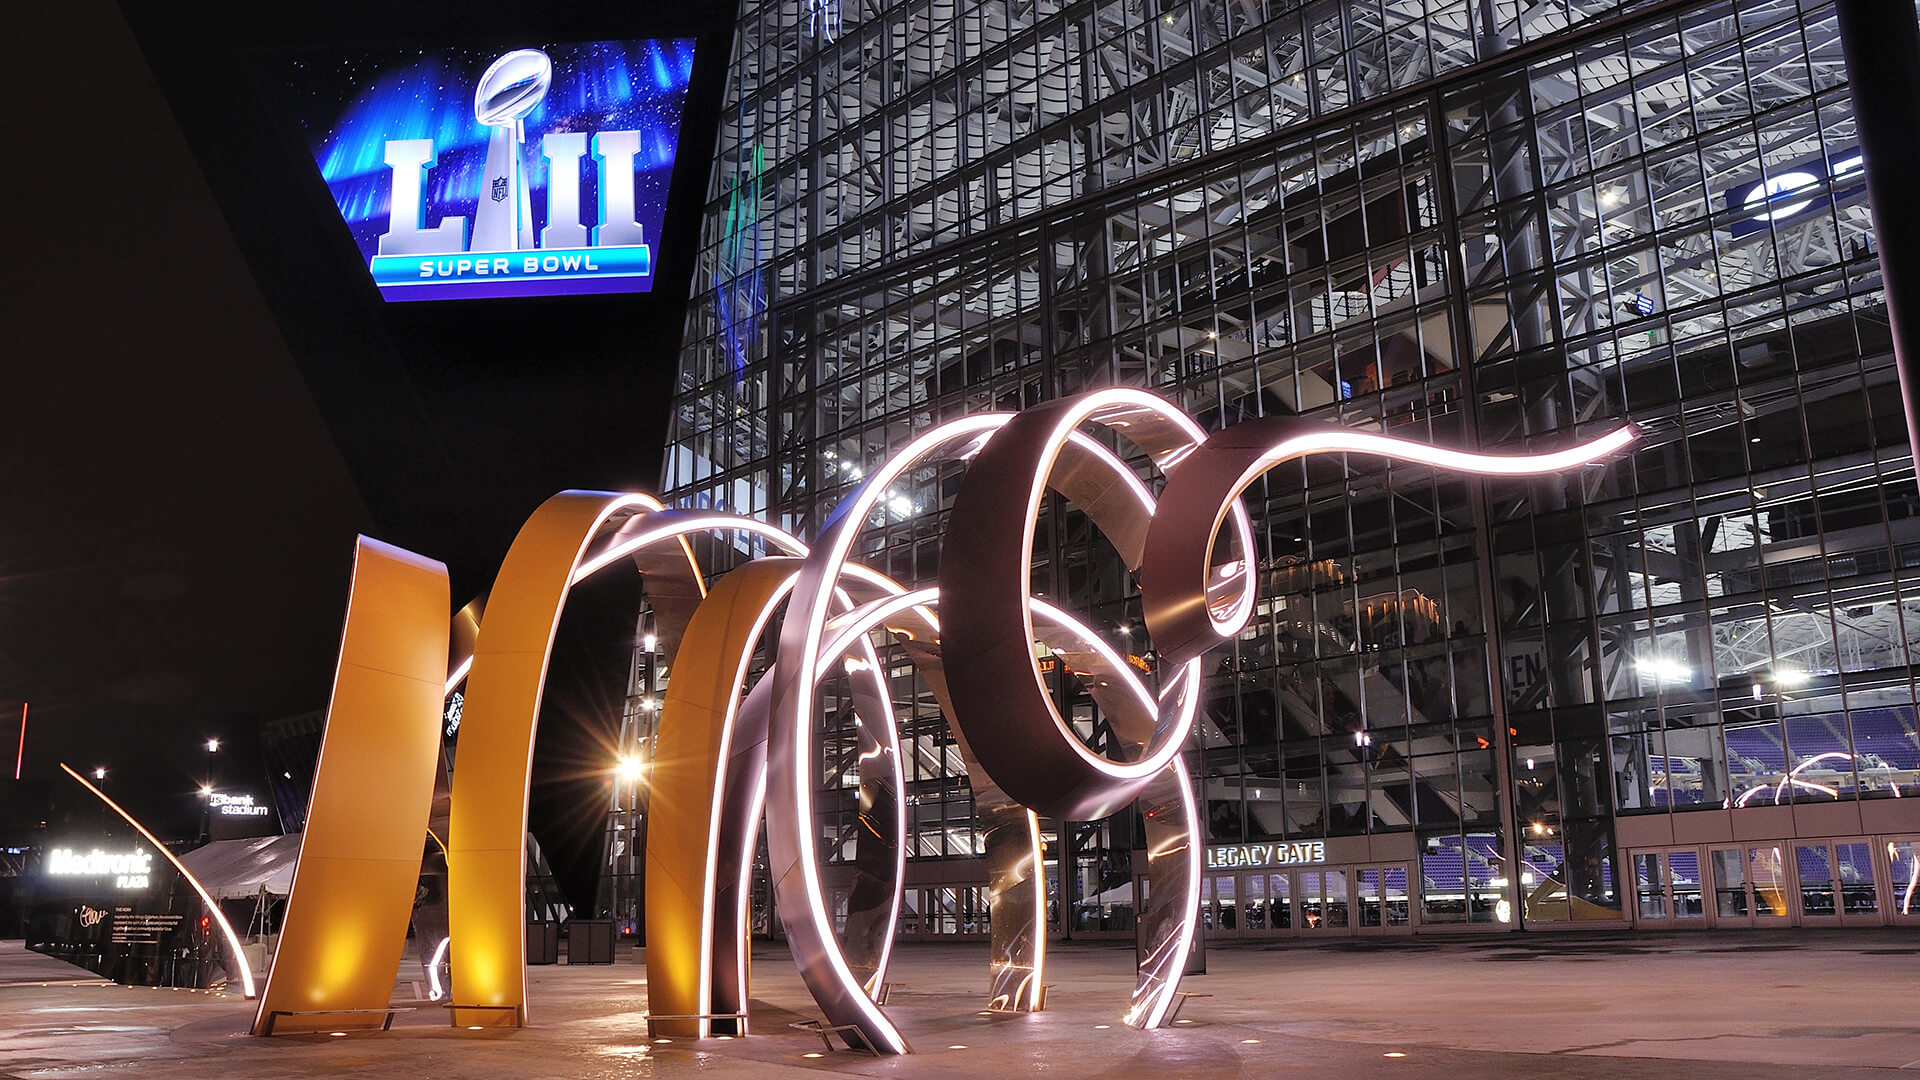 Drum corps well represented at Super Bowl LII halftime